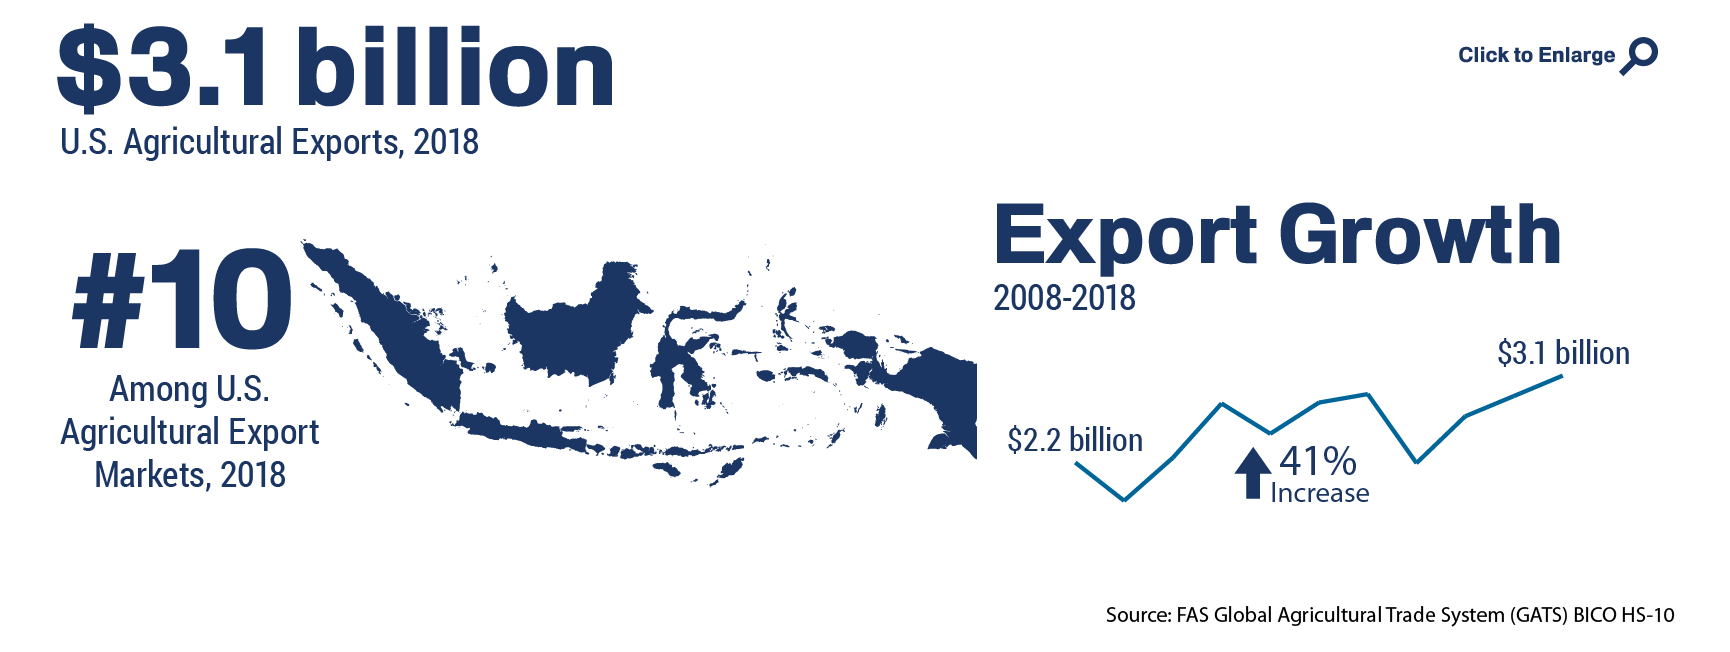 Infographic showing the ranking and total of U.S. agricultural trade to Indonesia in 2018